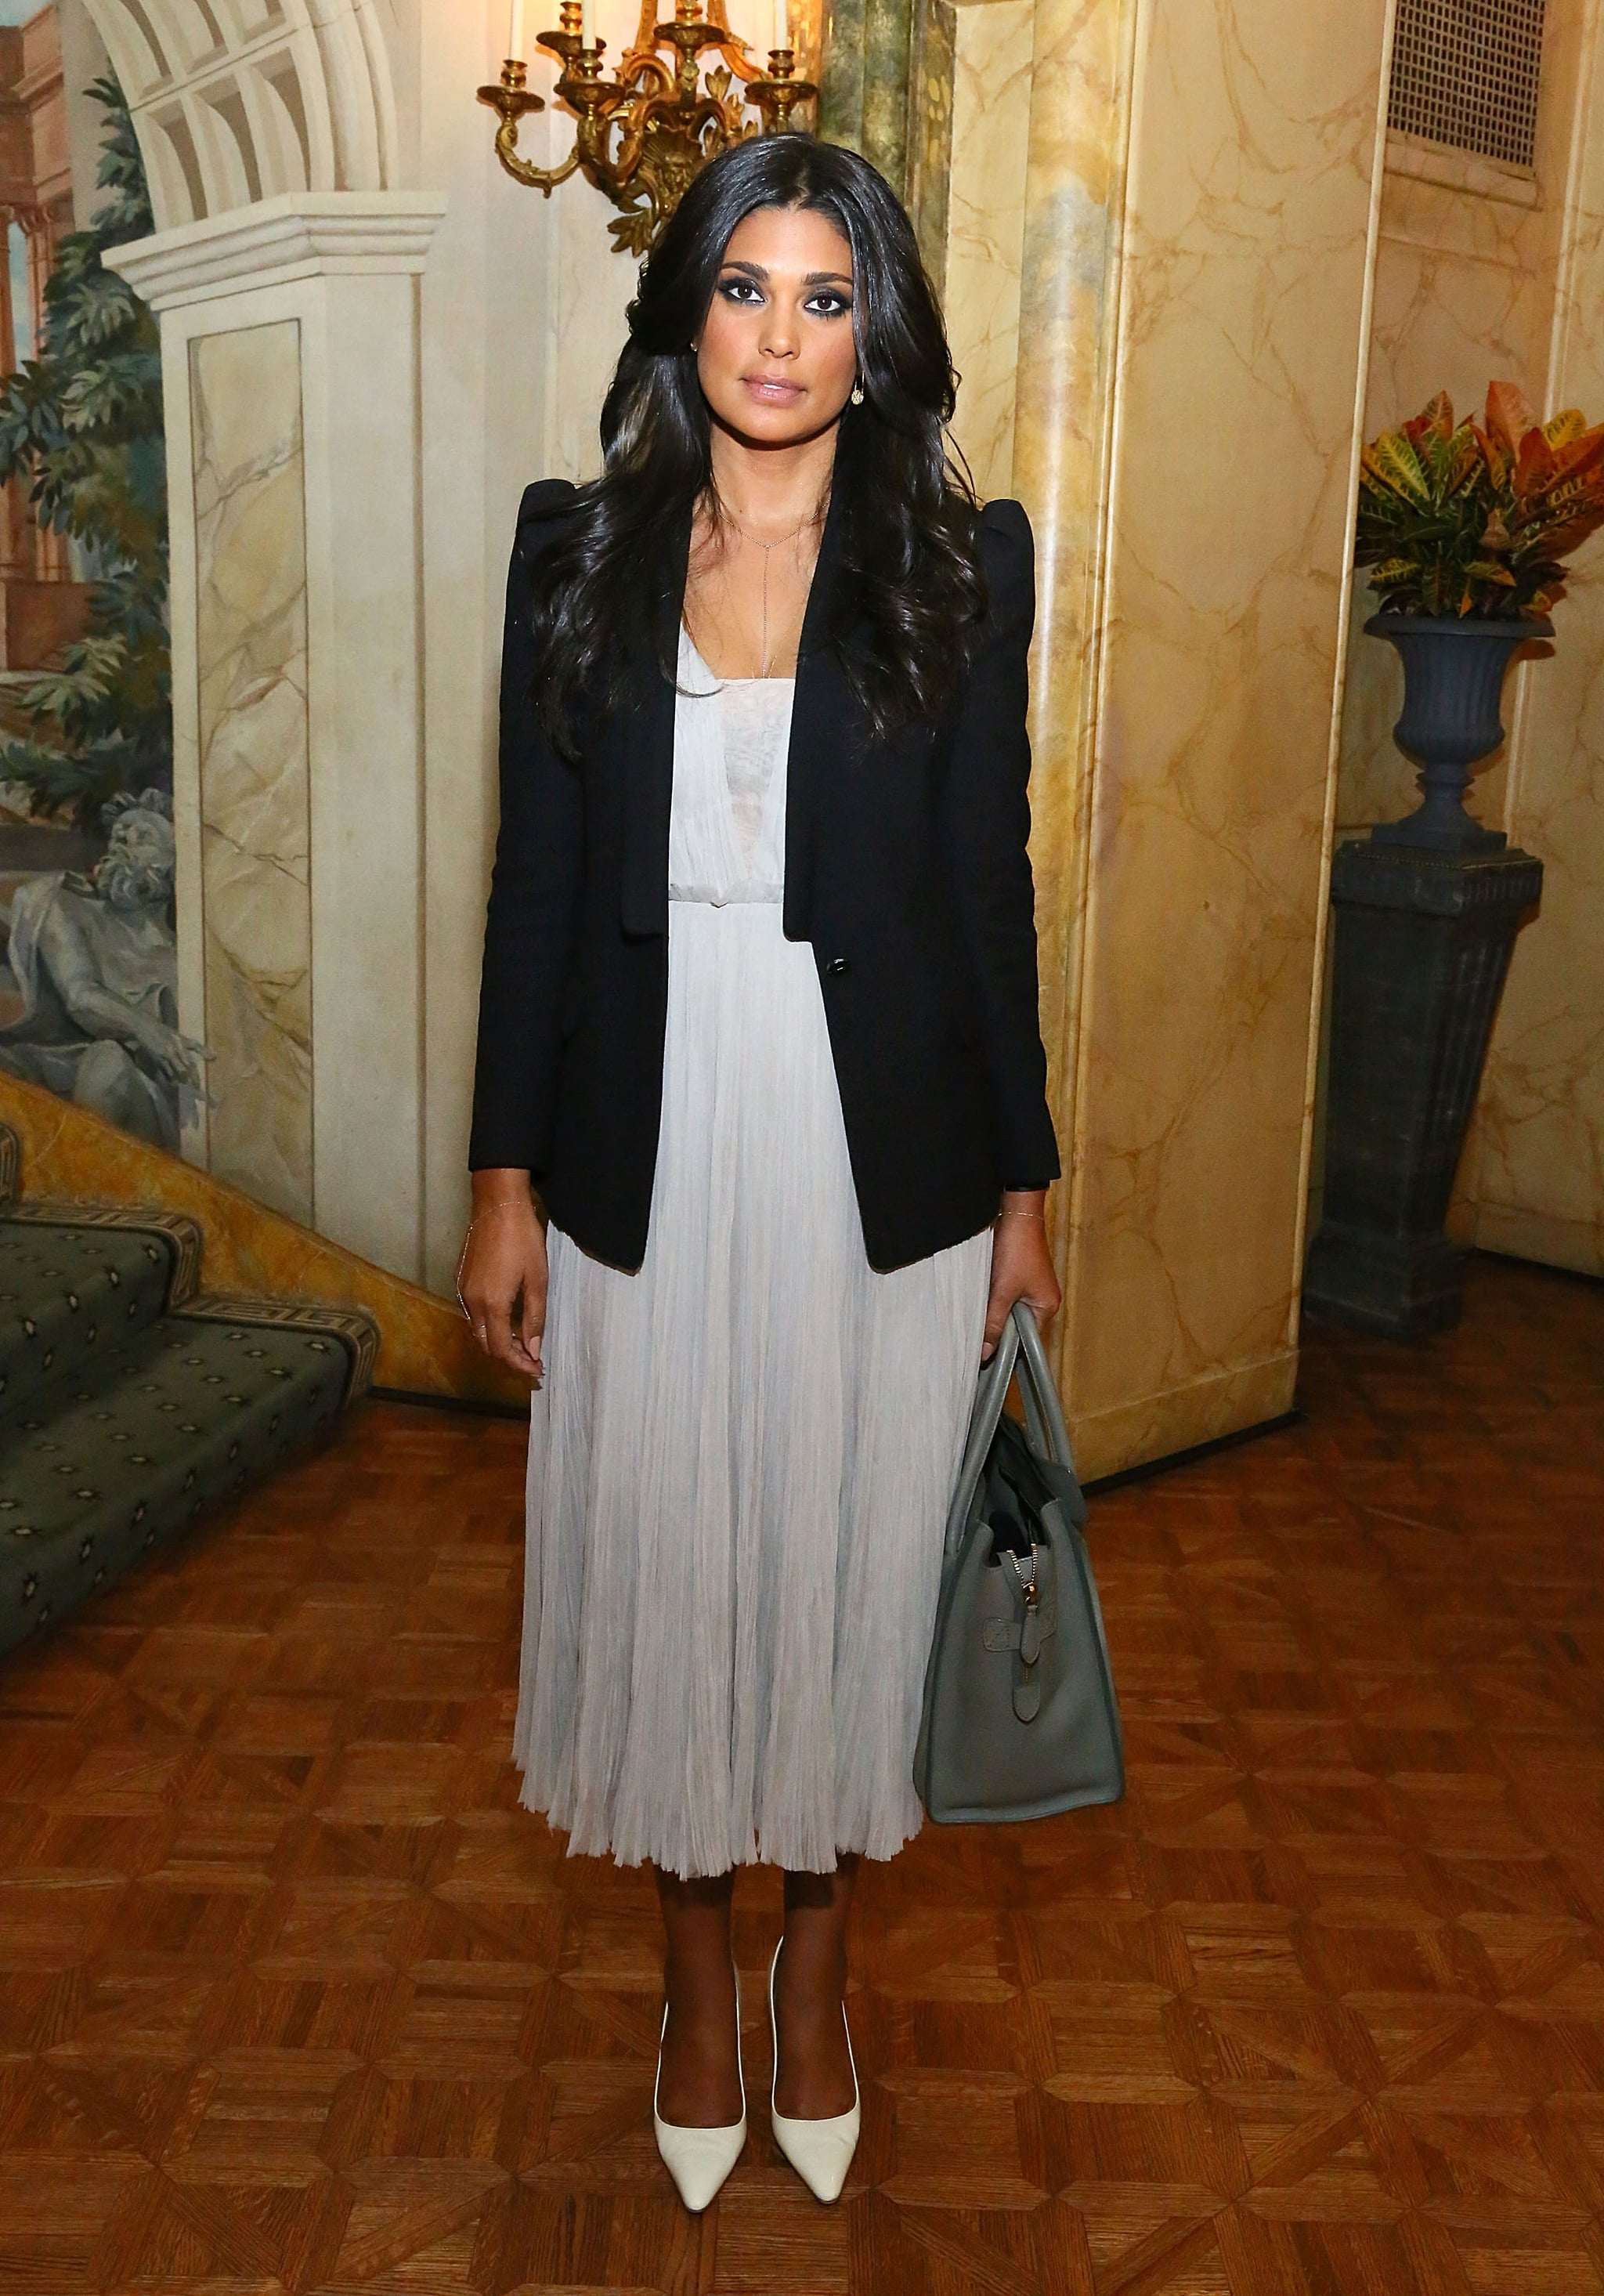 Rachel Roy joined the WWD Apparel and Retail CEO summit dinner in a layered evening look.